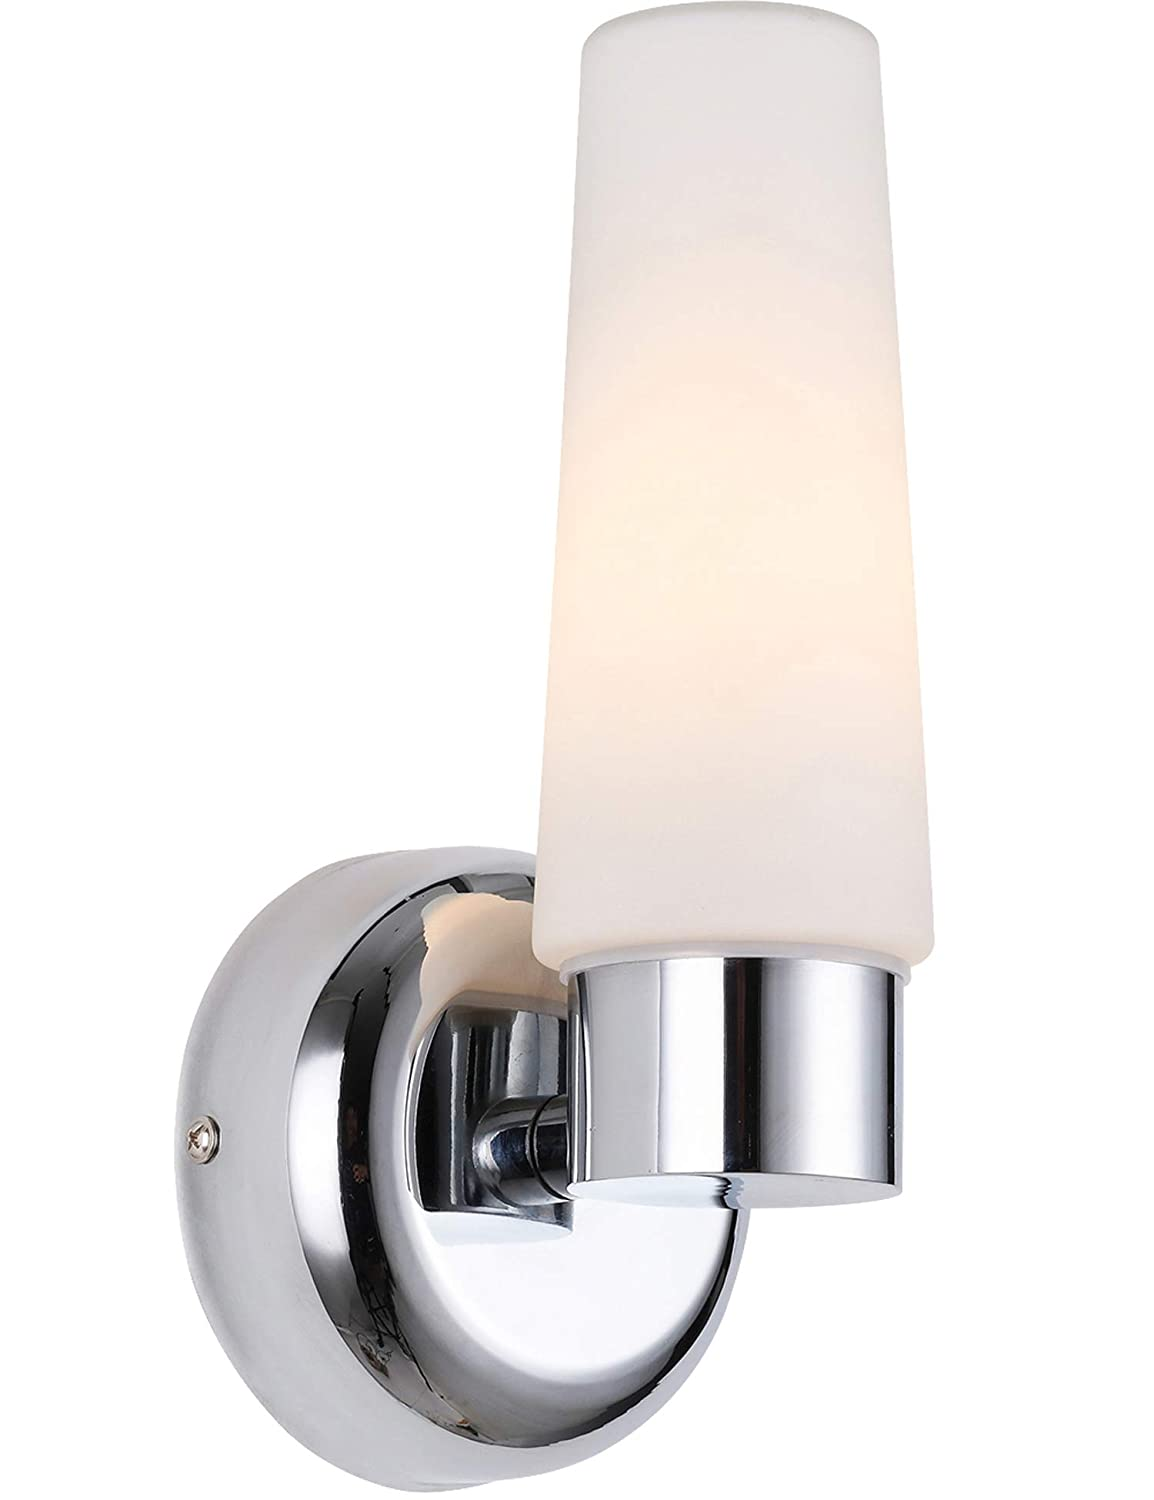 Betling de salle de bain Applique murale Applique d'éclairage lampe murale IP44 Vanity de maquillage, Chrome poli avec verre opale Trend Lighting Ltd